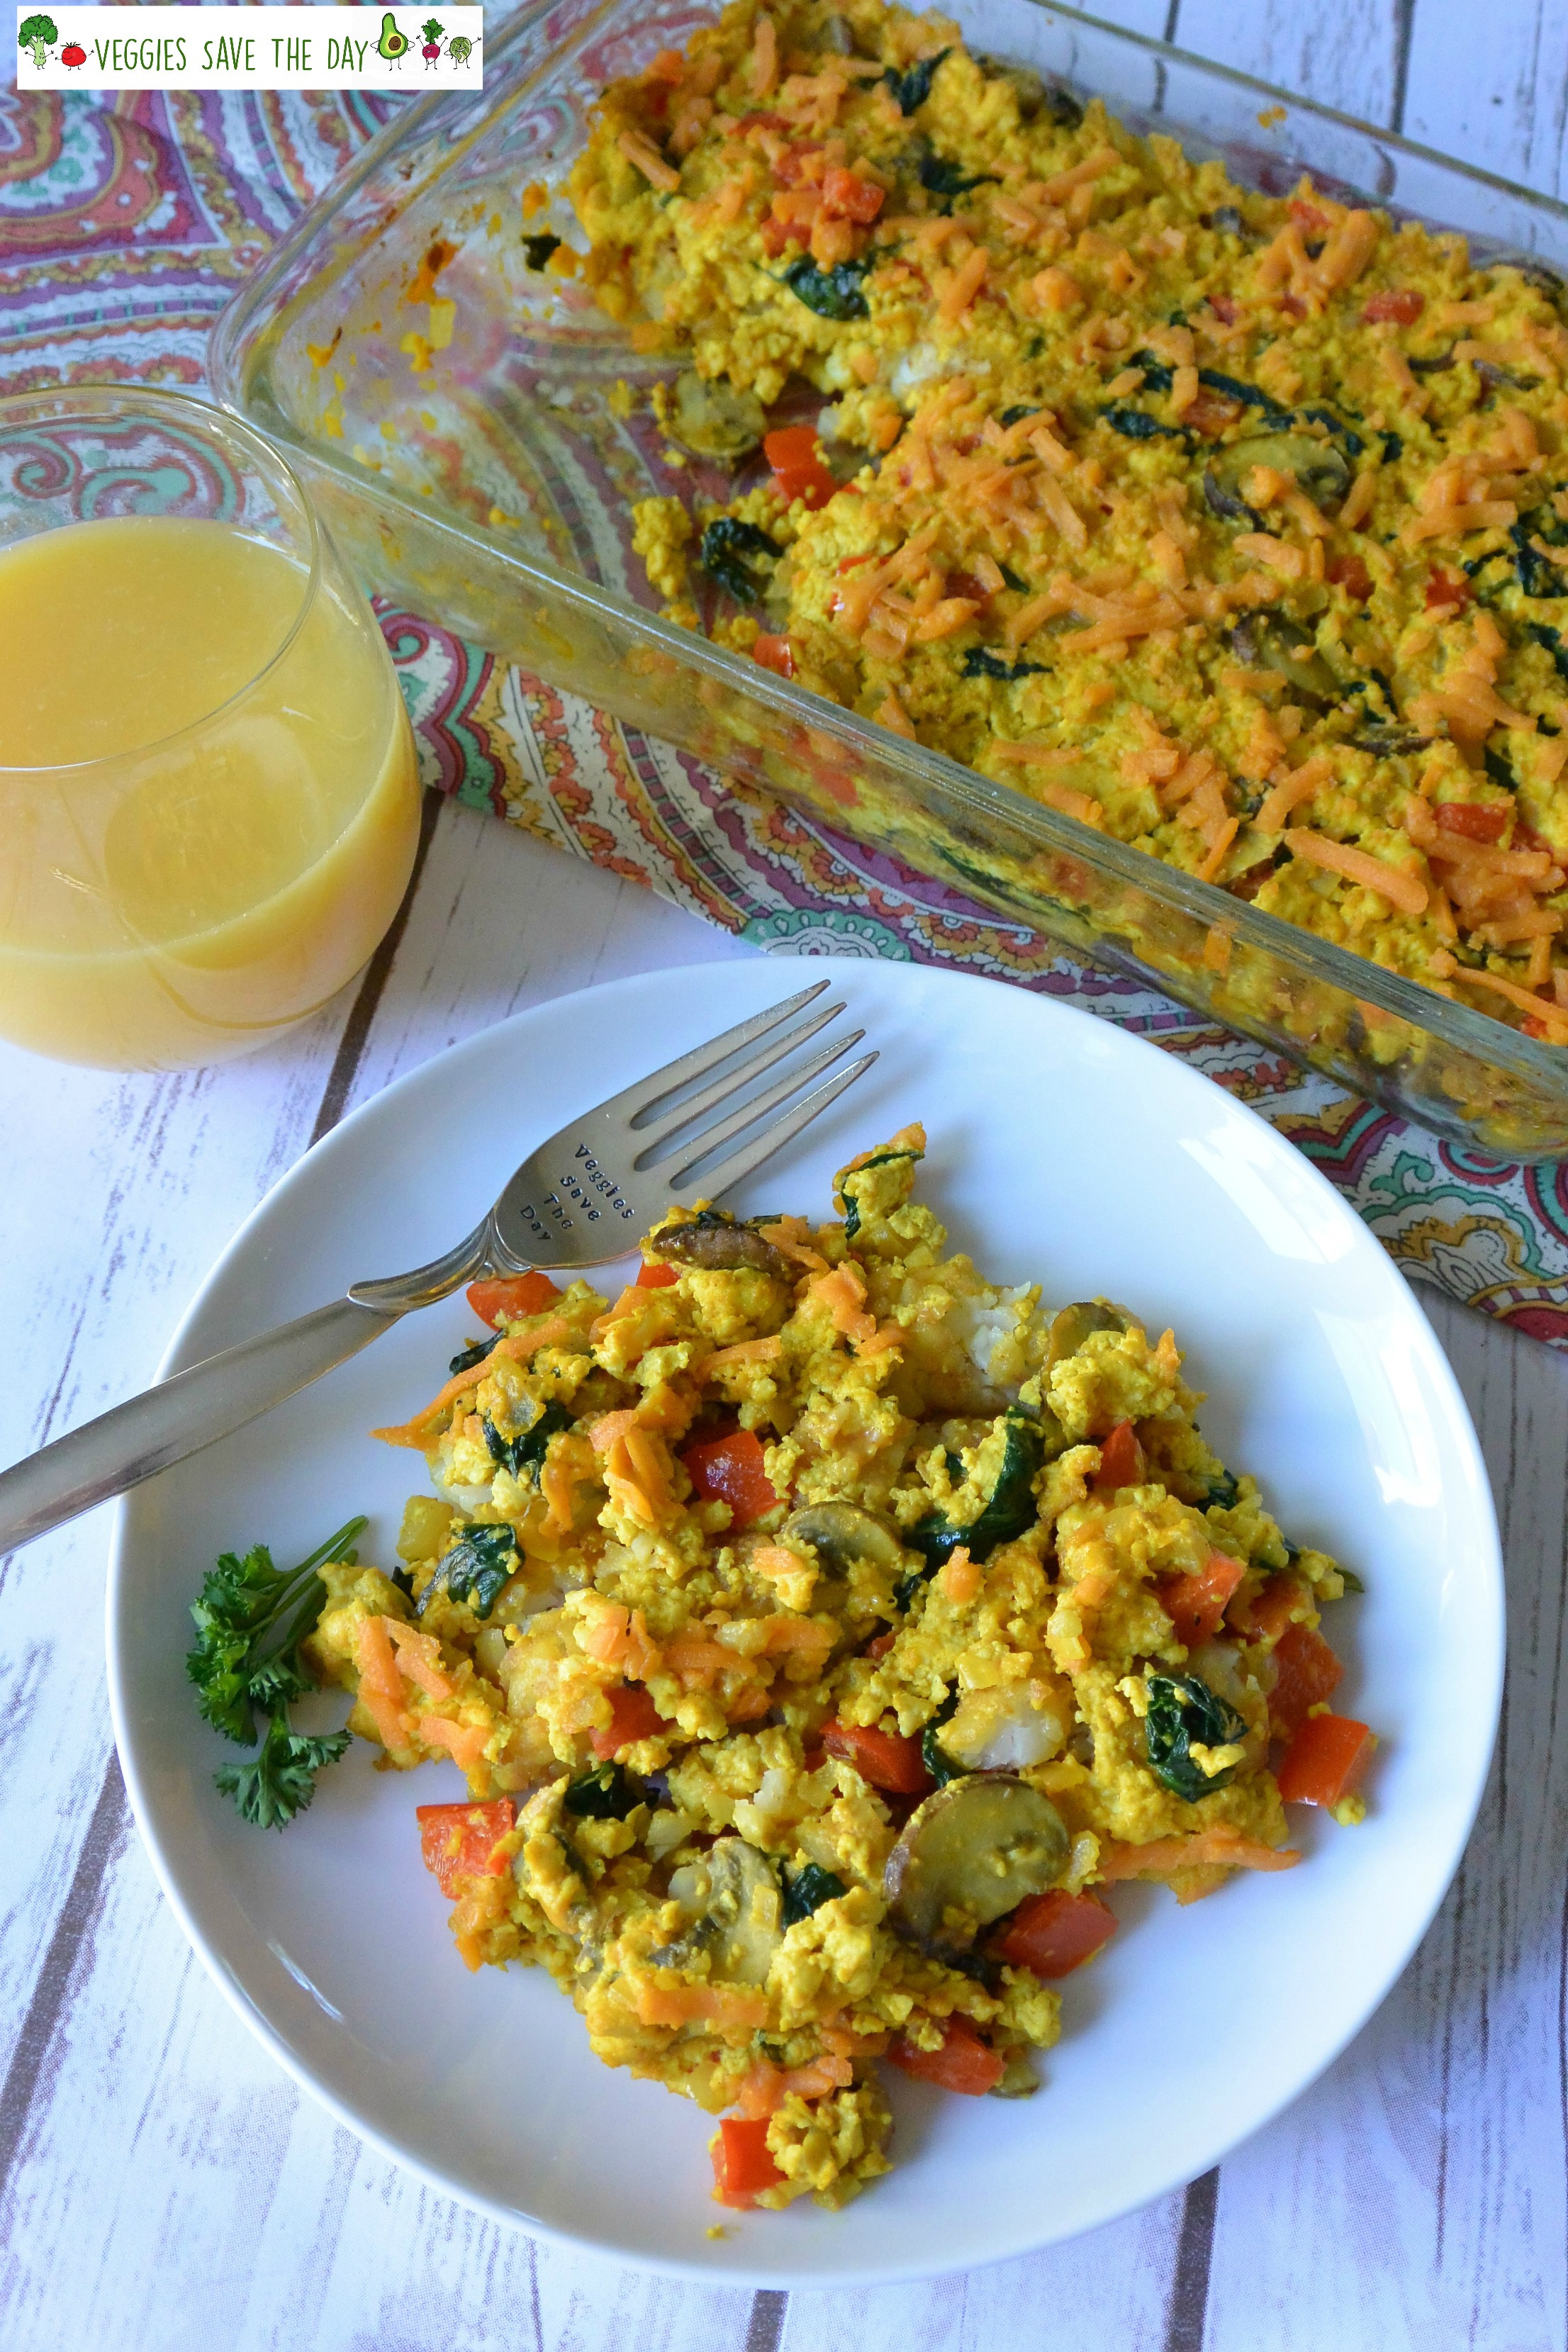 Veggies Save the Day's Tofu Scramble Casserole with Tater Tots